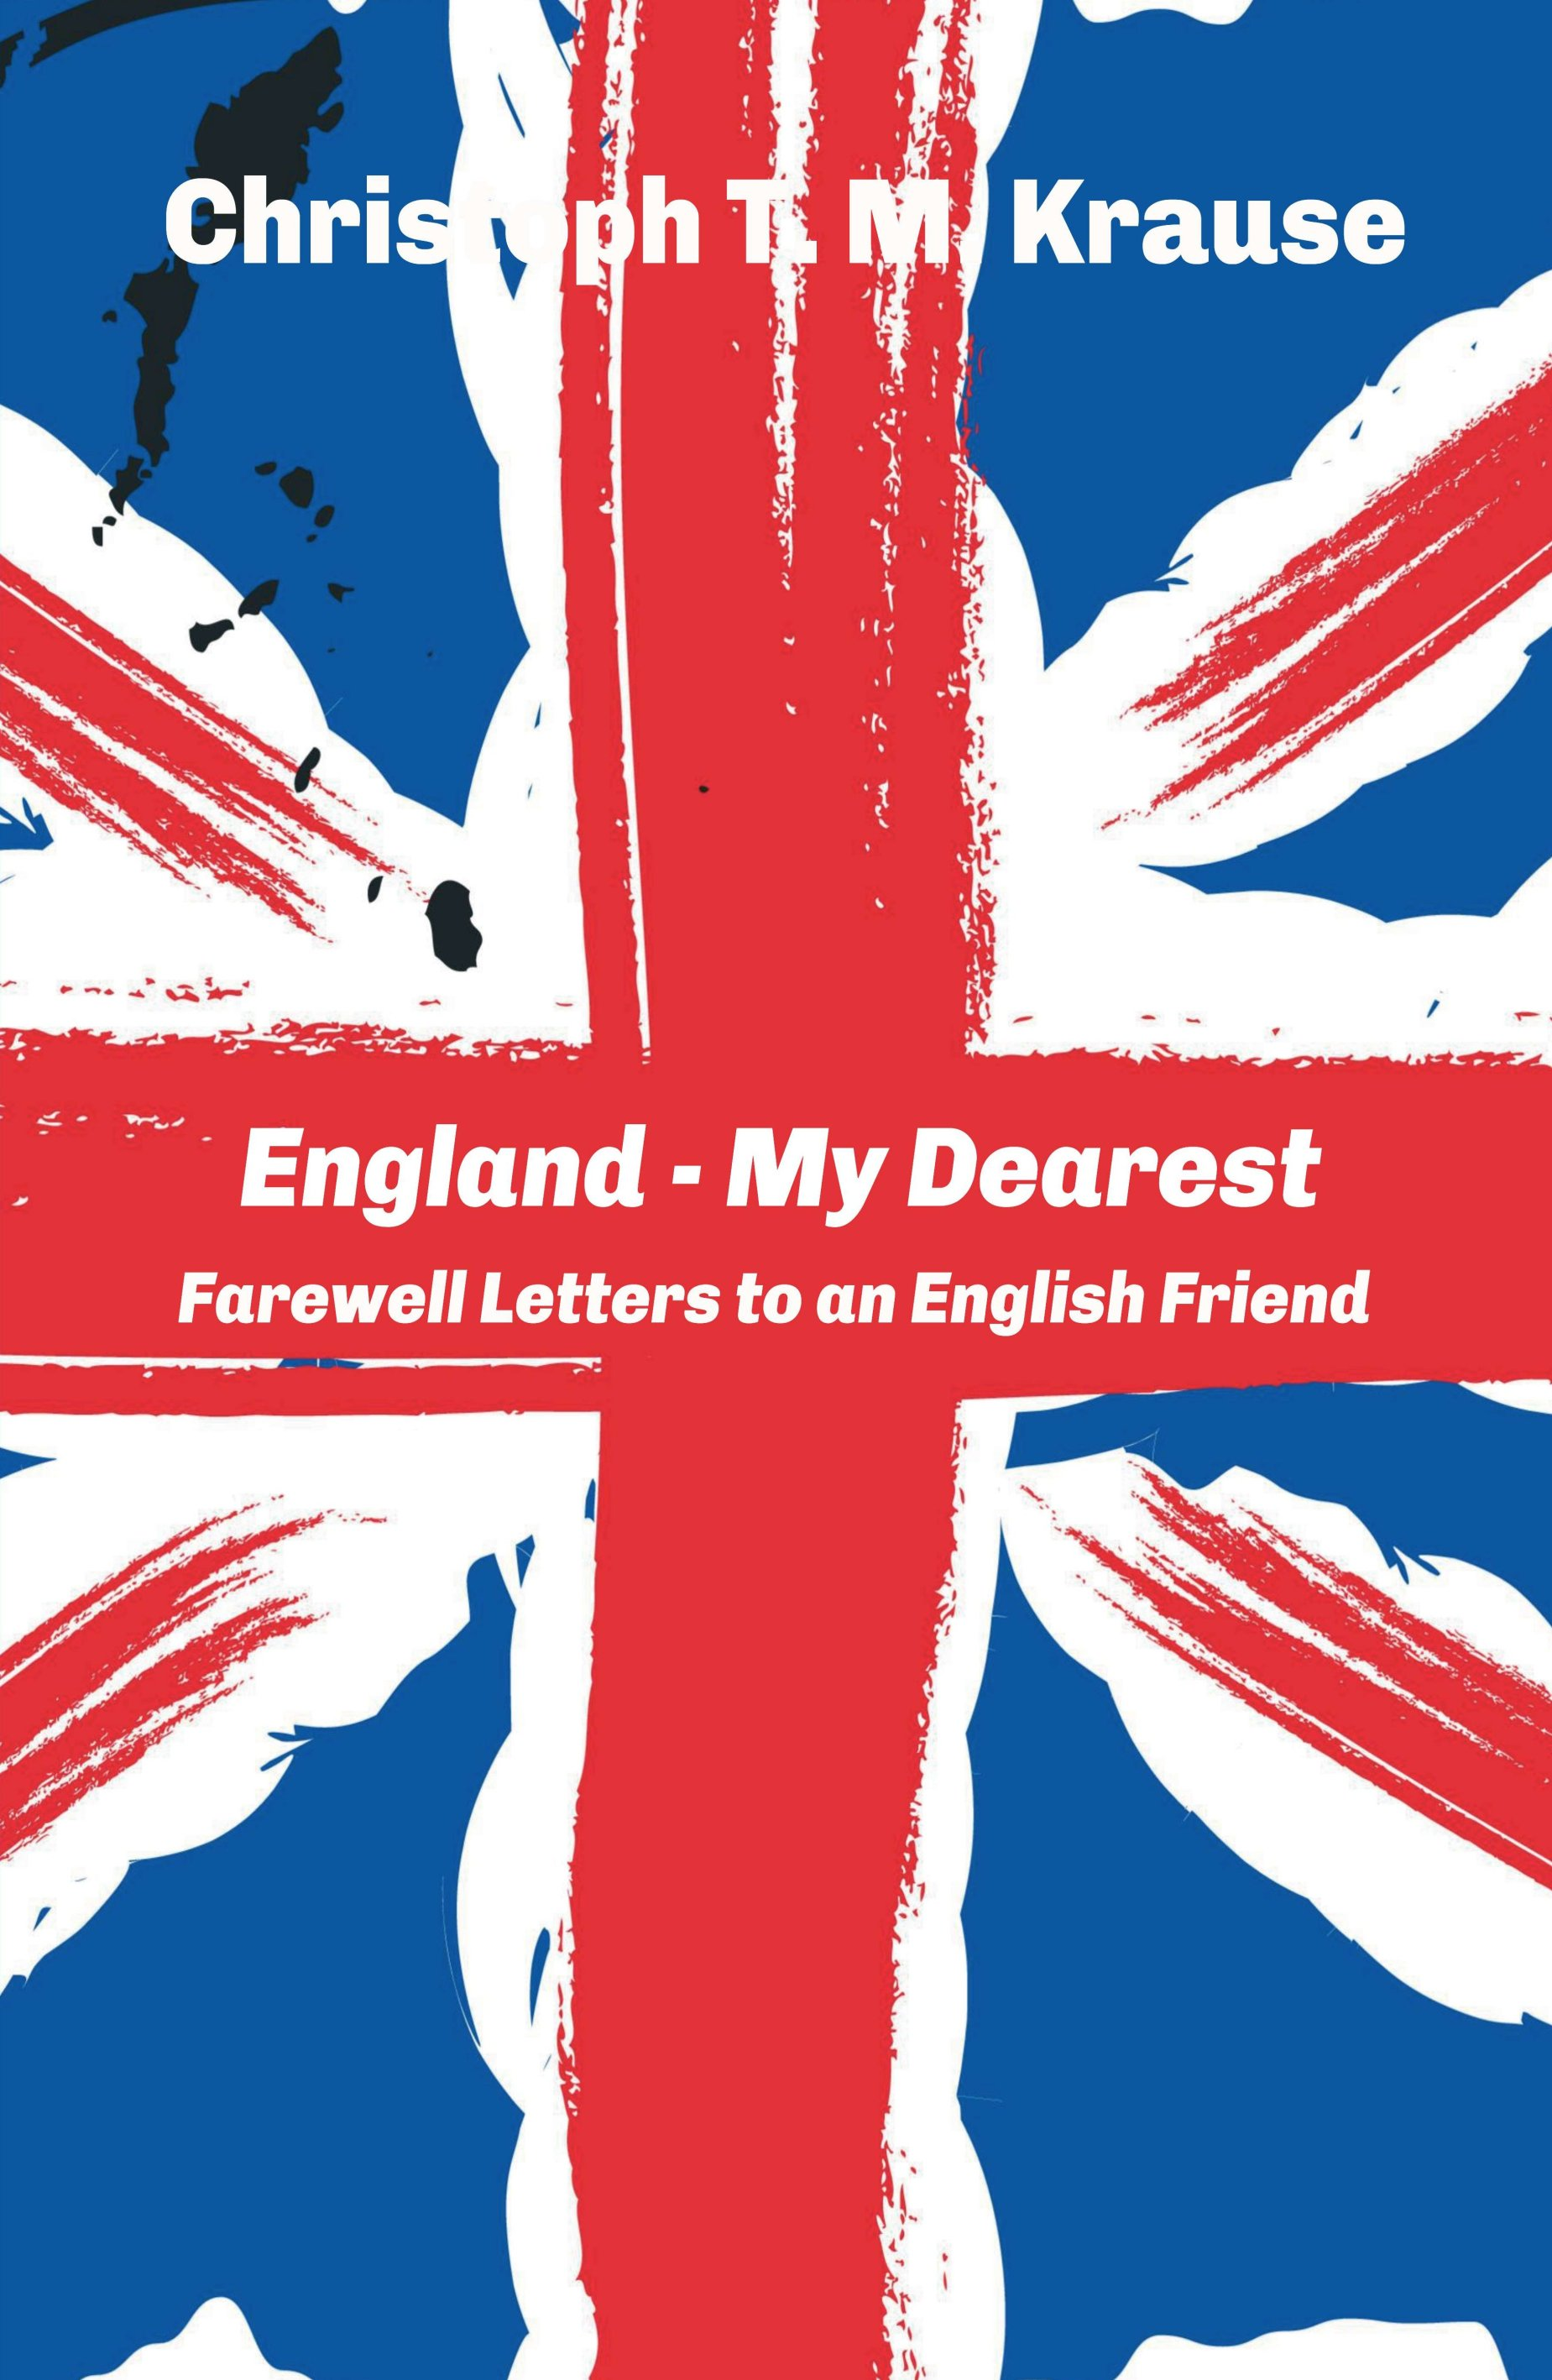 """England - My Dearest"" - Farewell Letters to an English Friend"